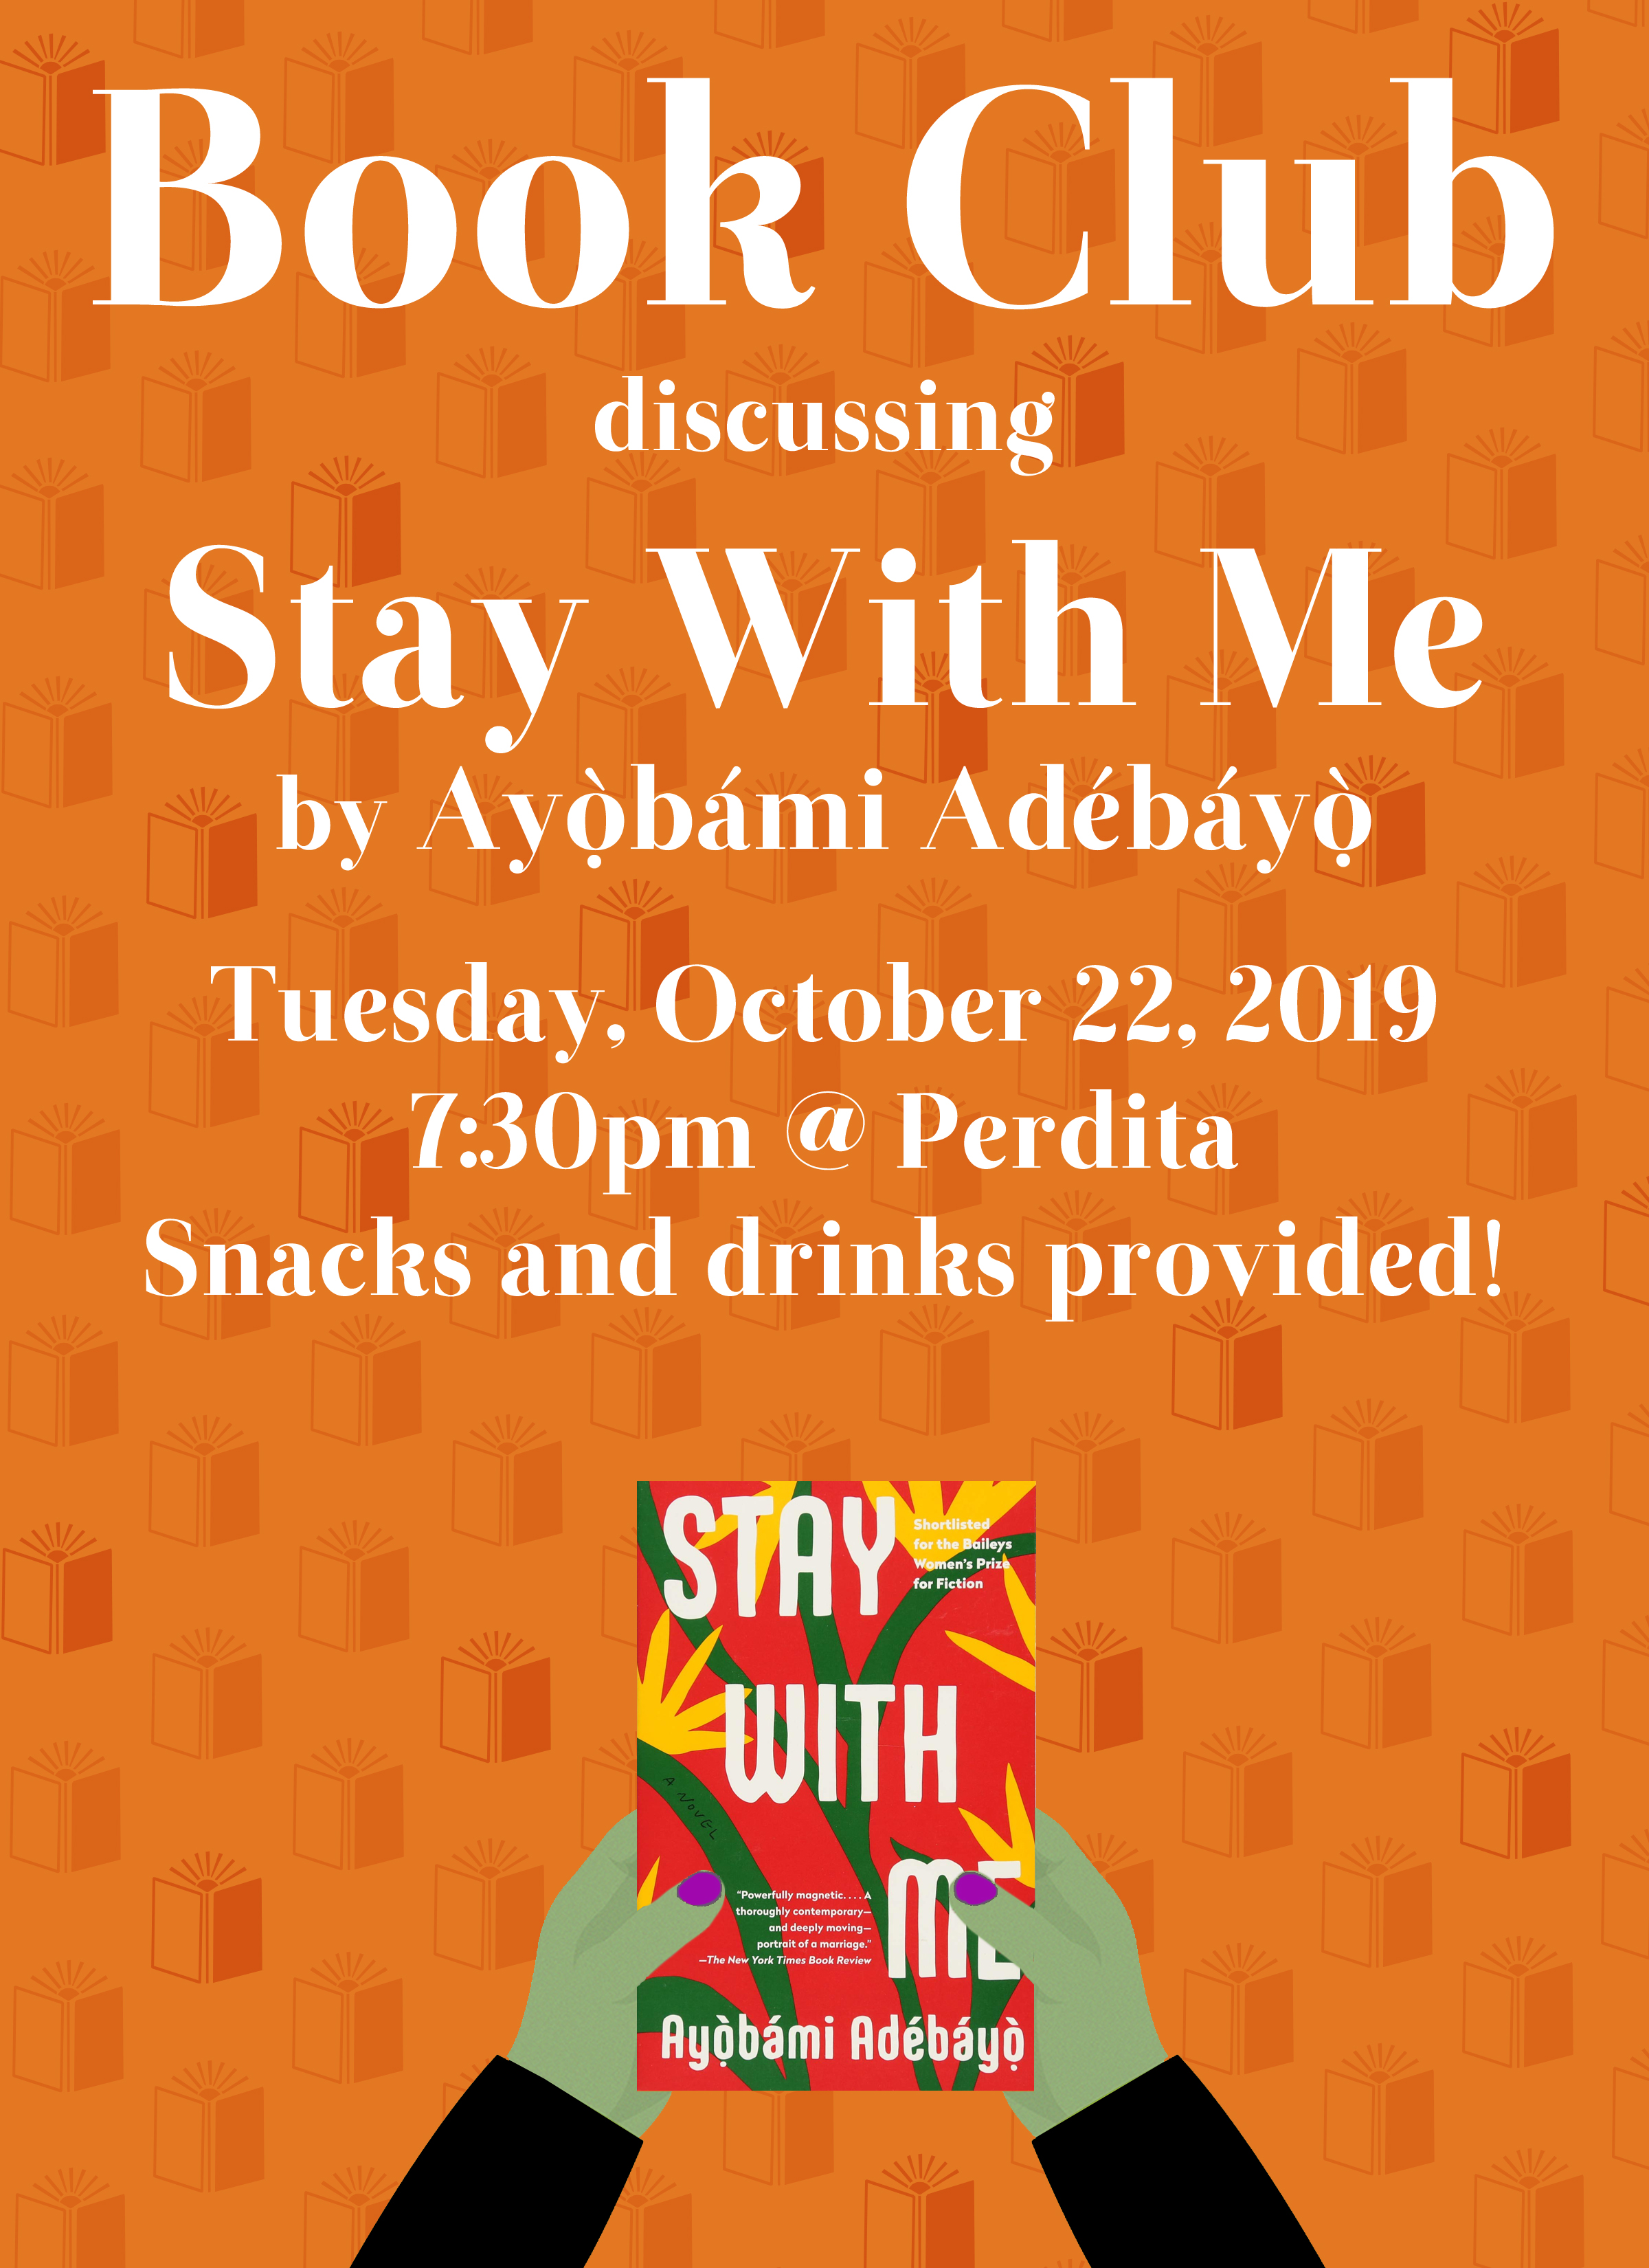 book club invite perdita stay with me october 2019.jpg